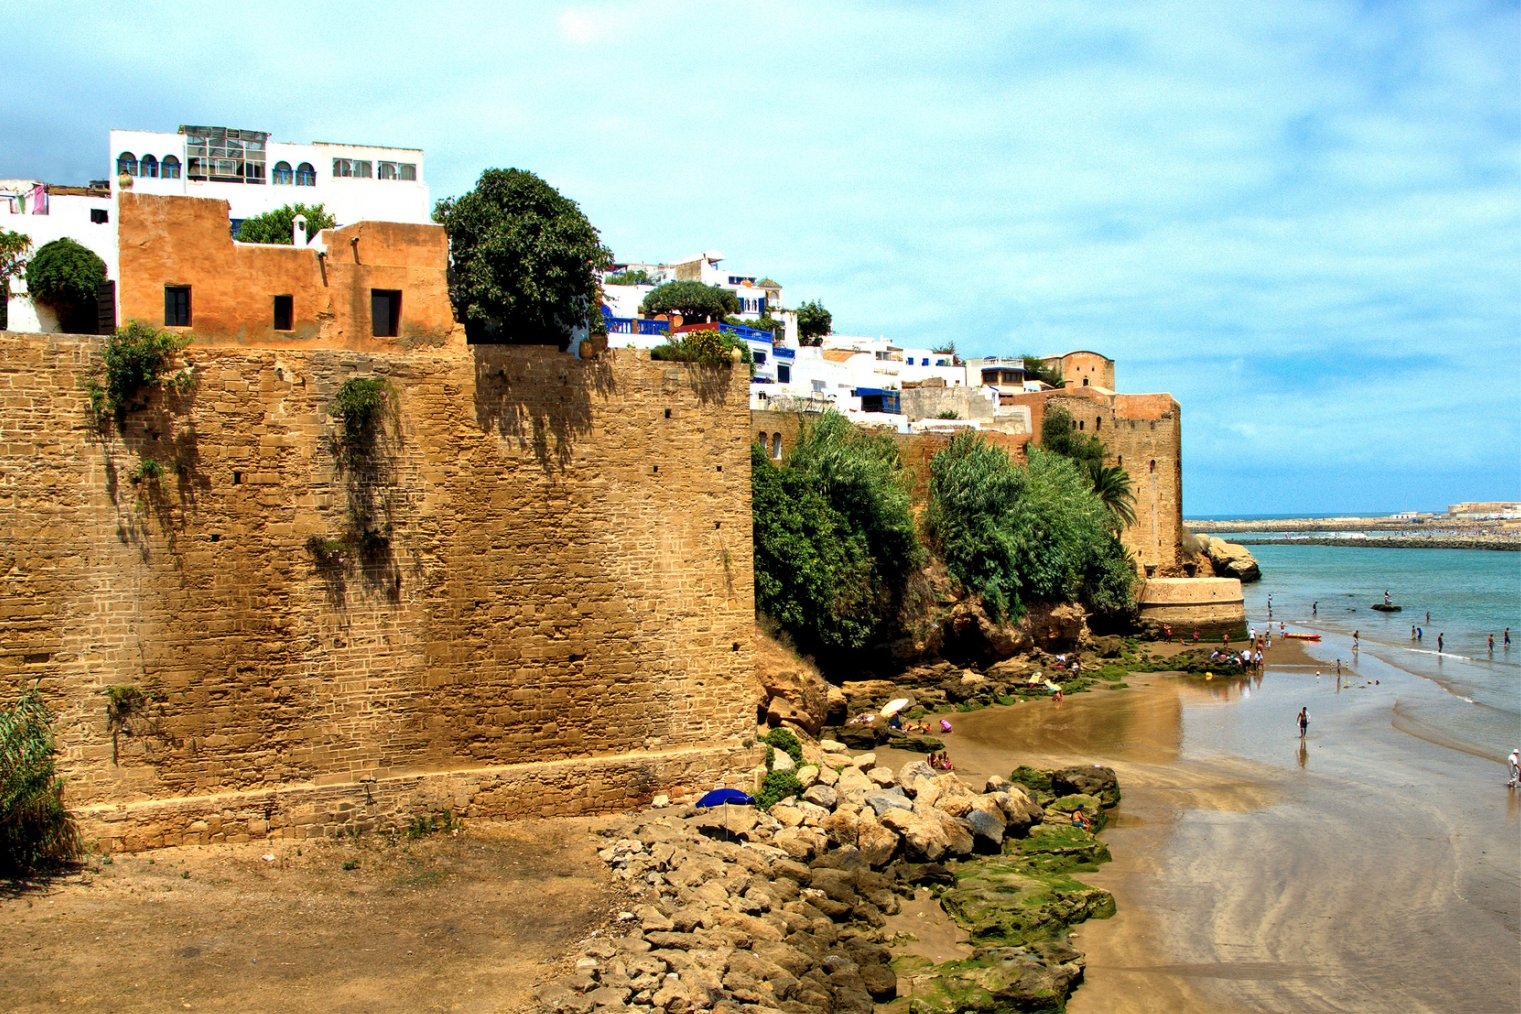 Rabat. Kasbah of the Udayas. Travel. Касба Удайя. Туризм